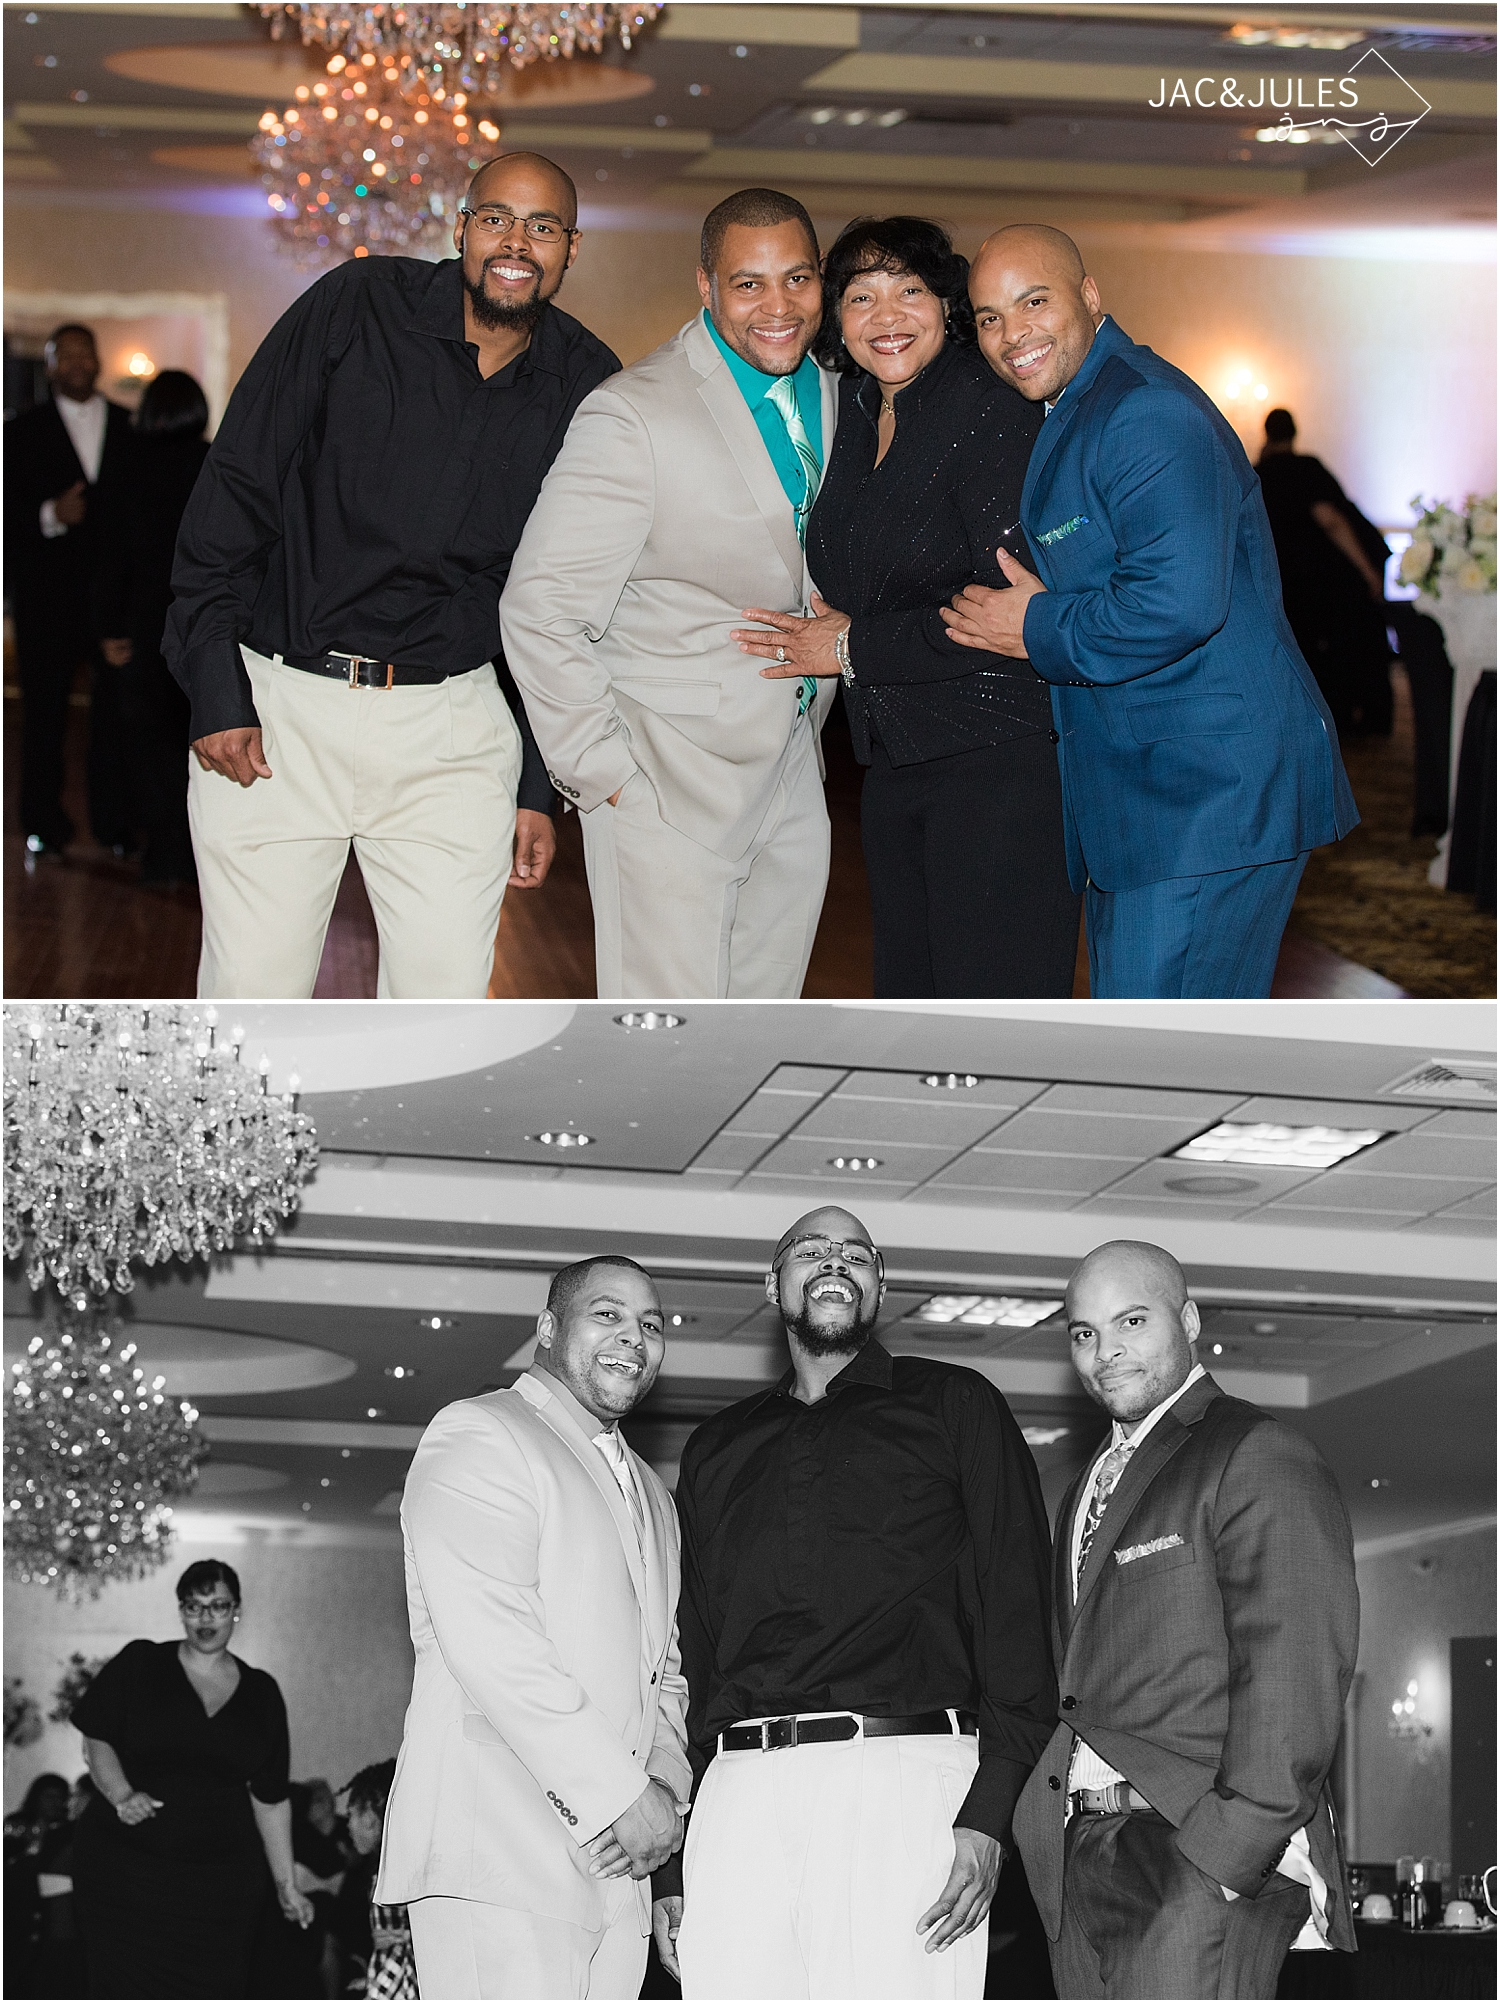 jacnjules photographs retirement party at holiday inn in east windsor, NJ